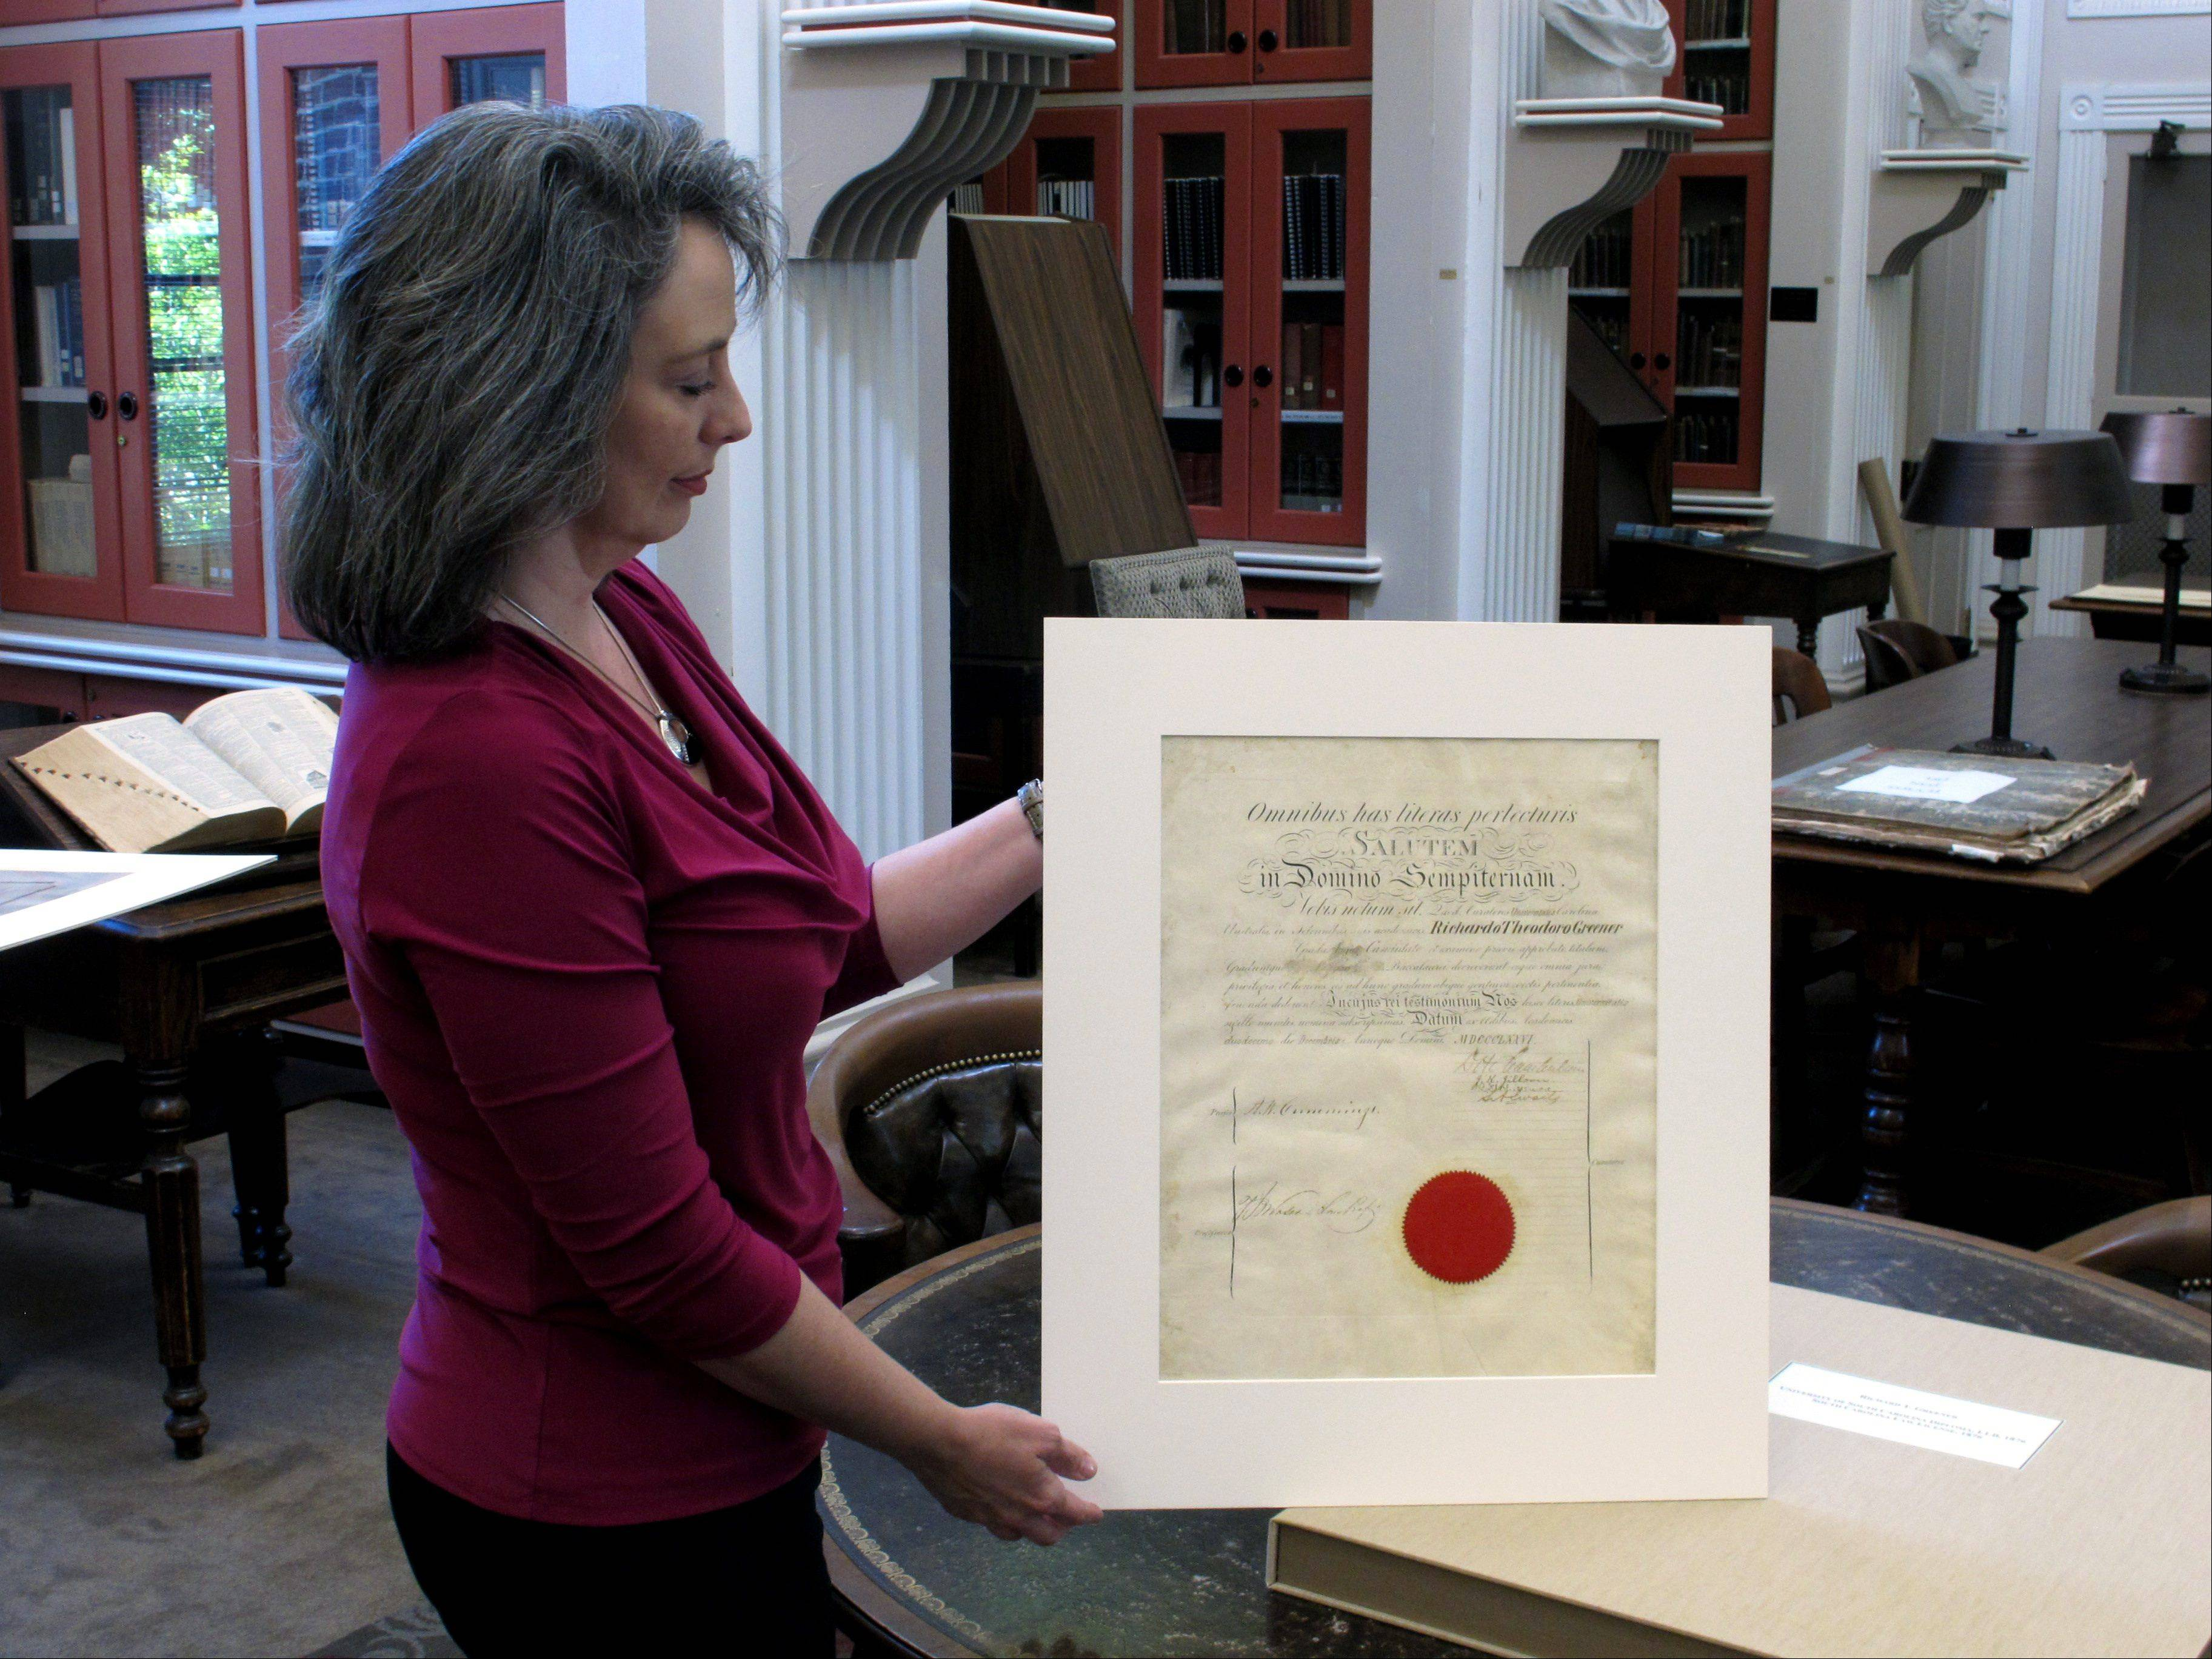 University of South Carolina archivist Elizabeth Cassidy West shows the diploma earned by Richard Theodore Greener.